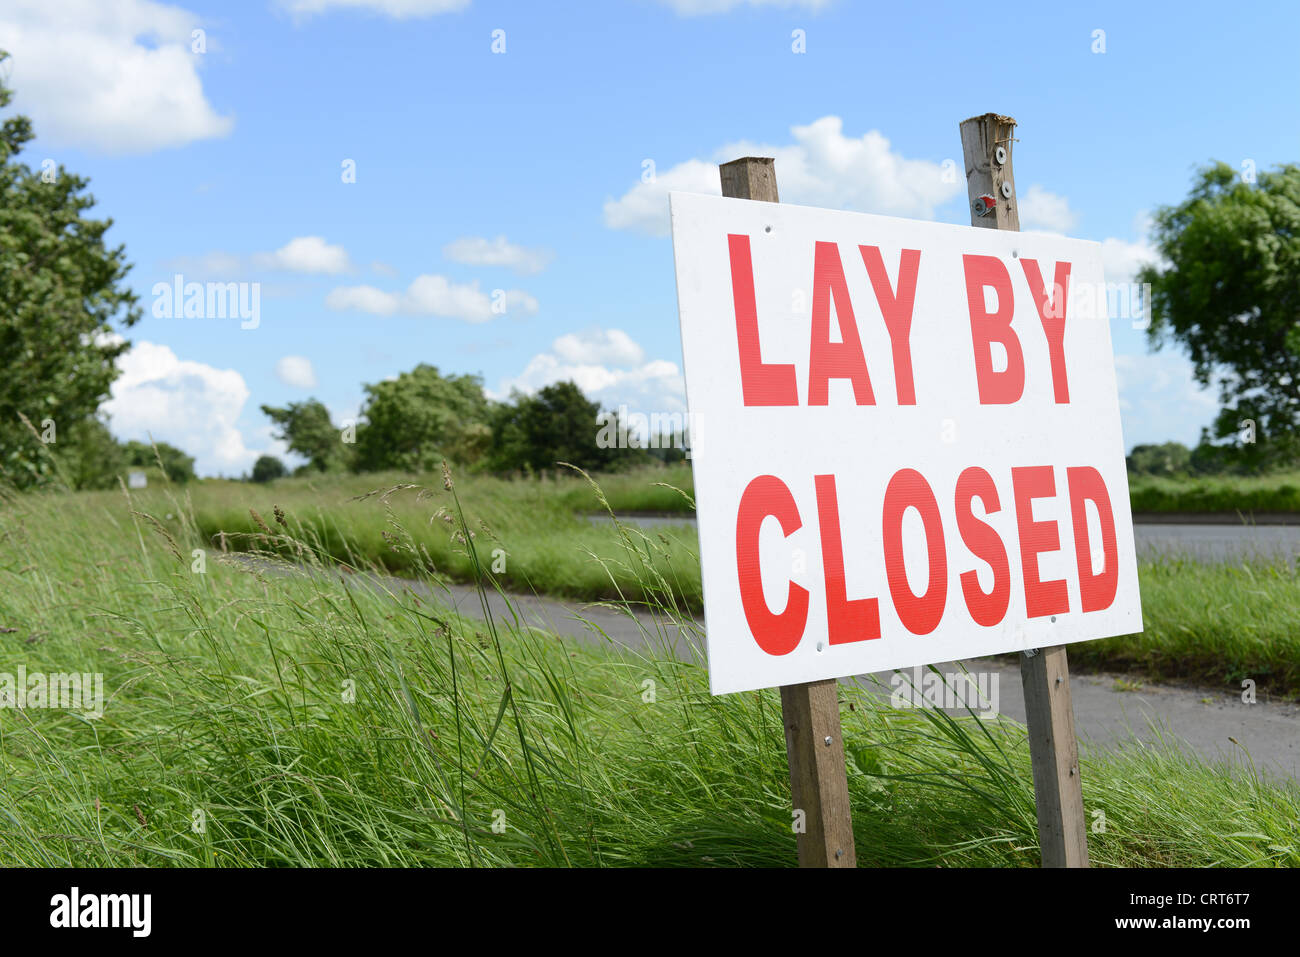 Lay by closed sign by side of road - Stock Image